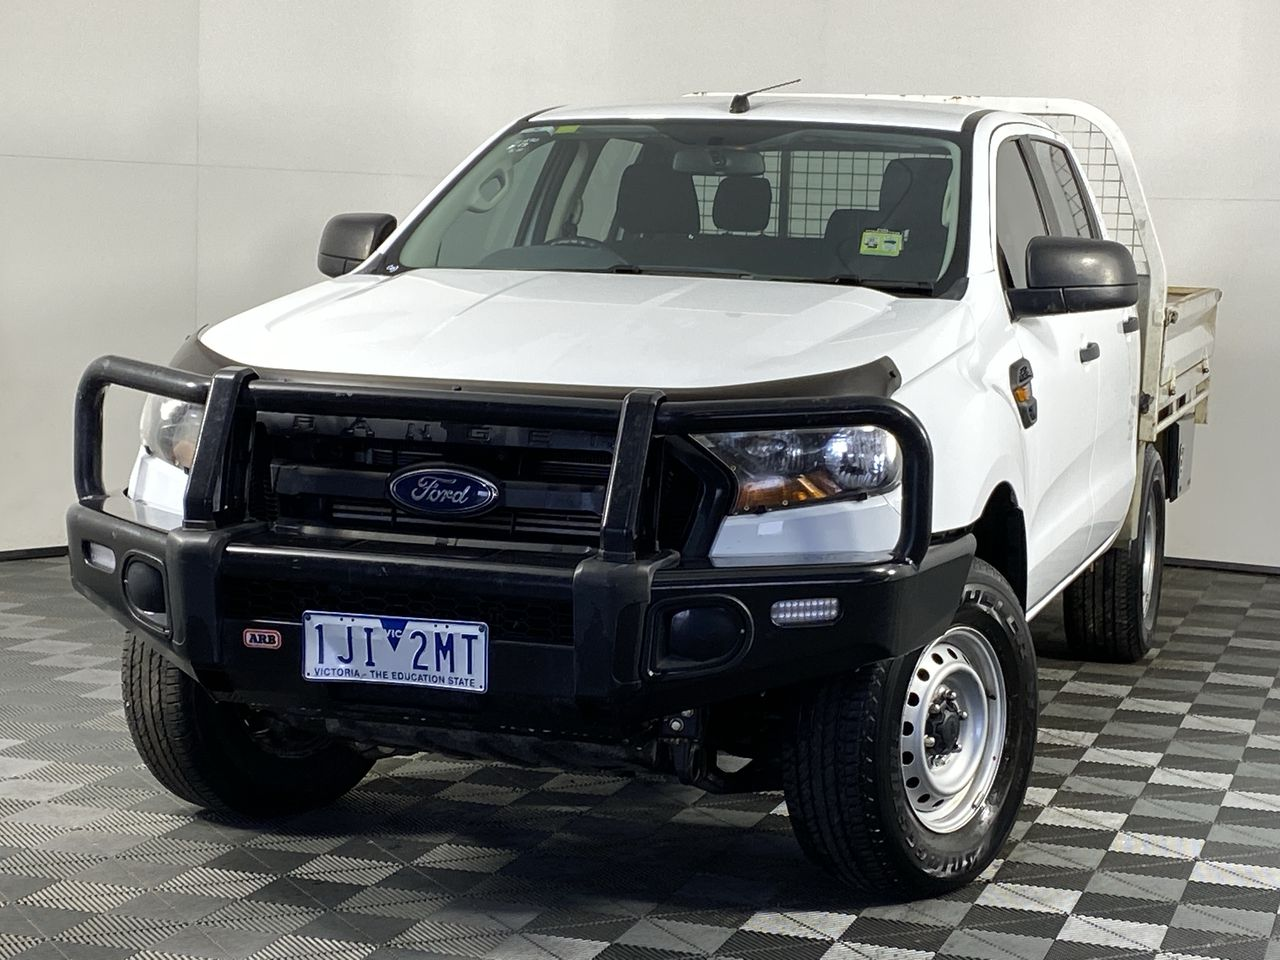 2016 Ford Ranger XL 4X4 PX II Turbo Diesel Manual Crew Cab Chassis